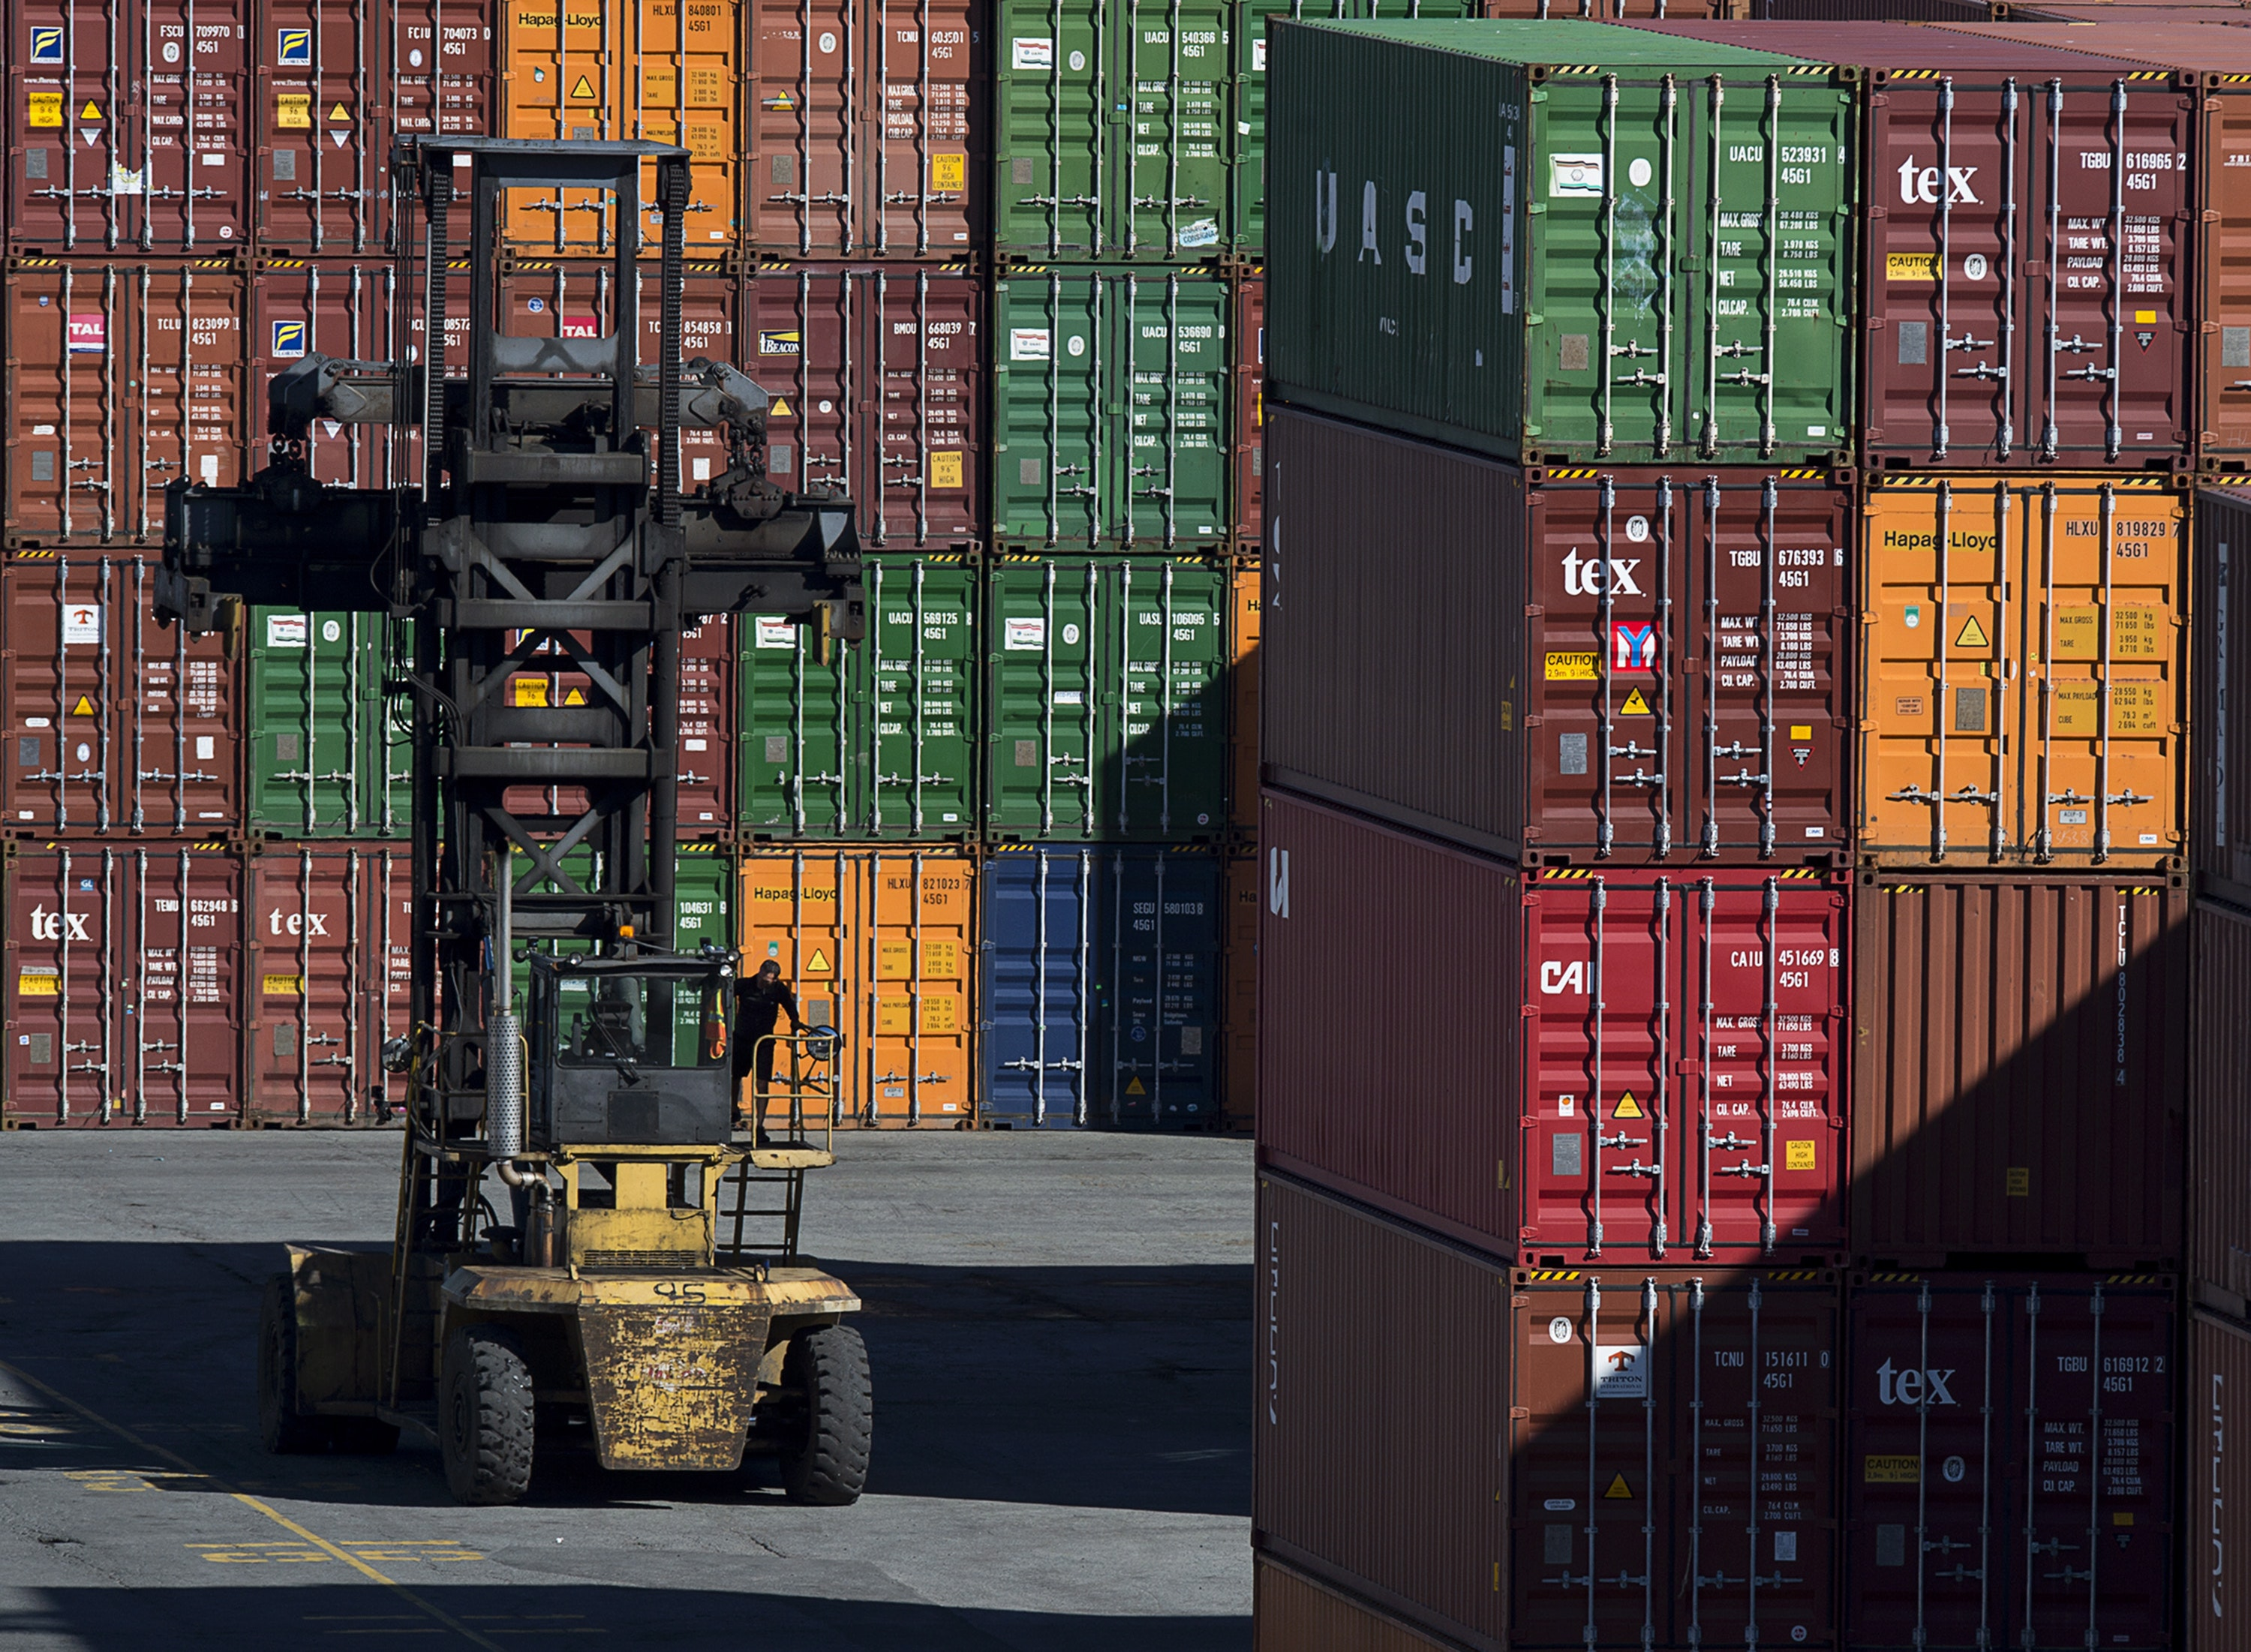 Canada's ports policy needs to move into the 21st century